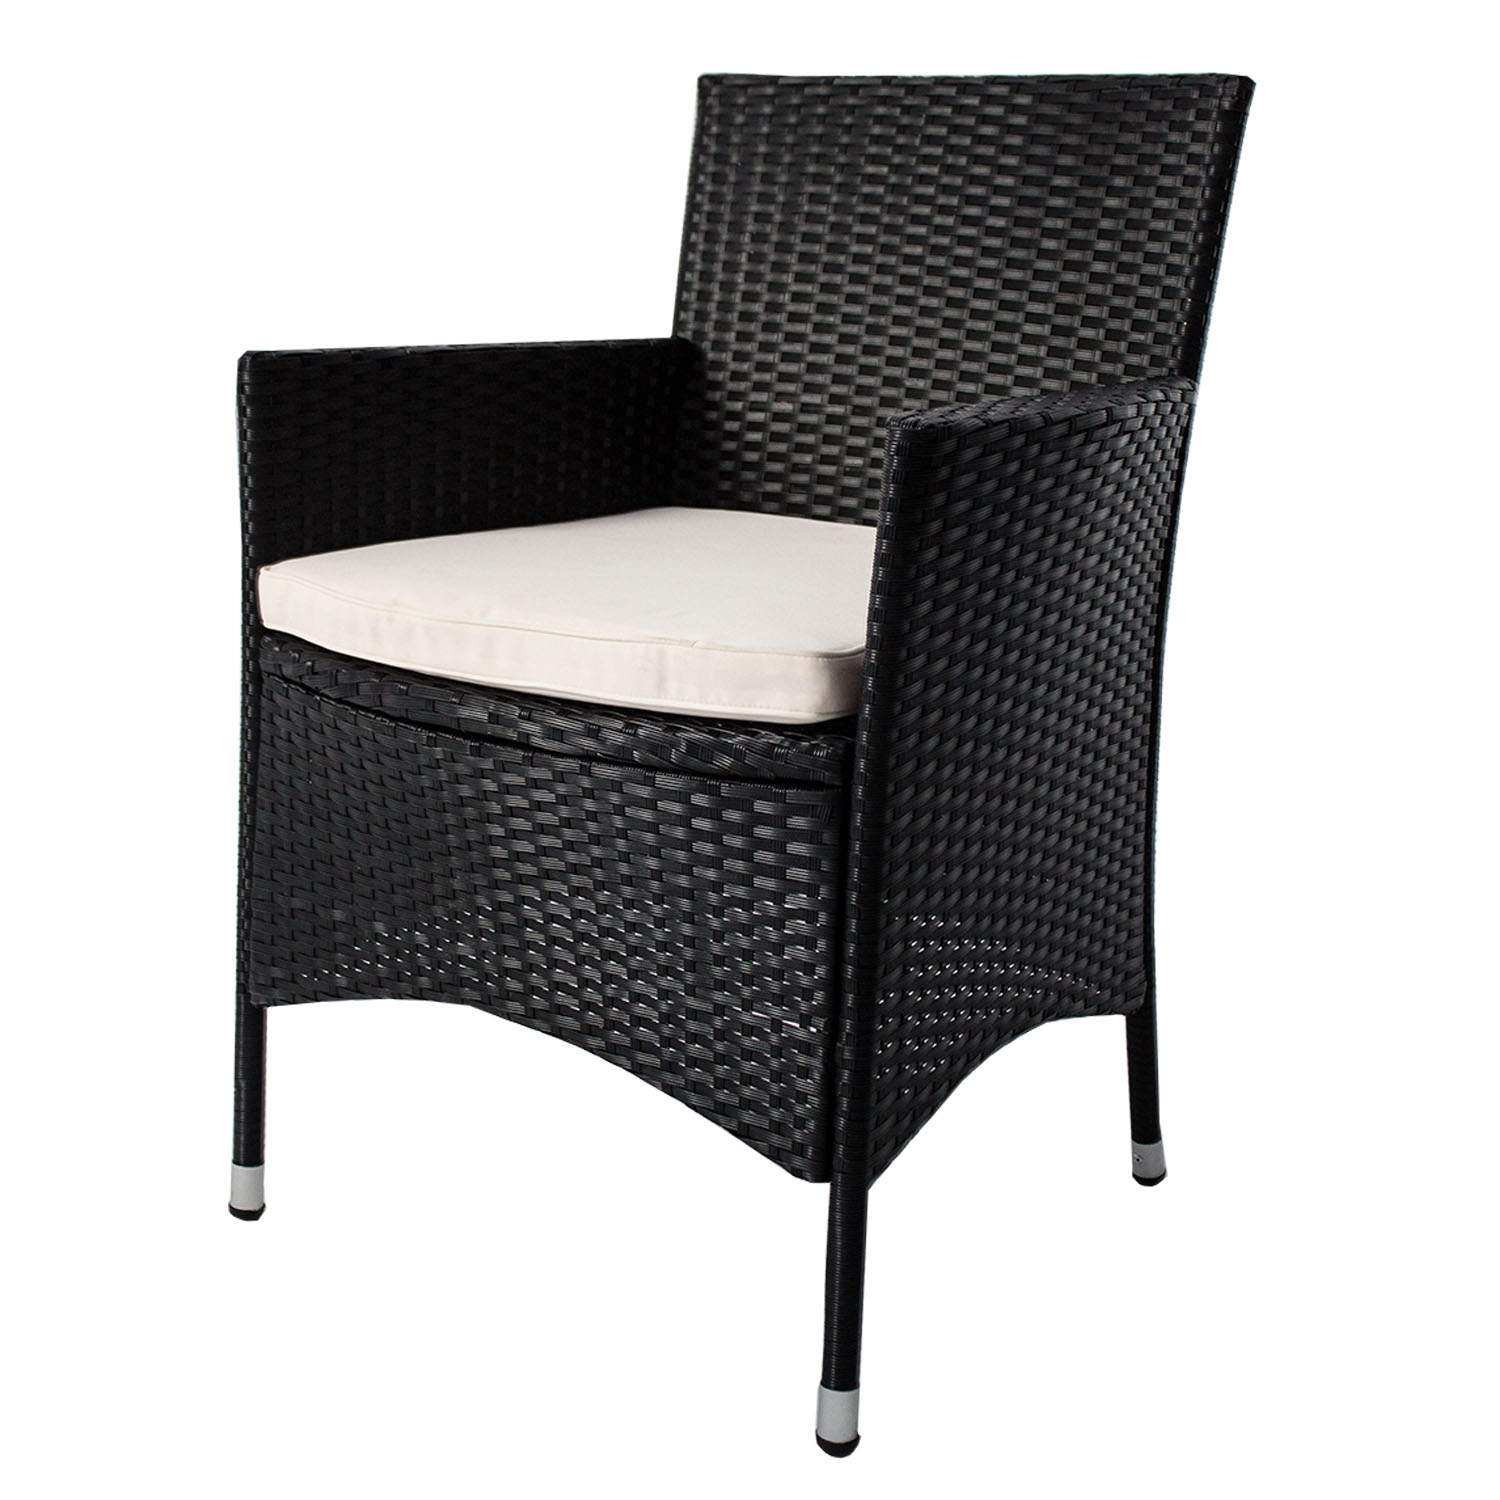 polyrattan gartenm bel essgruppe gartenset esstischgruppe. Black Bedroom Furniture Sets. Home Design Ideas